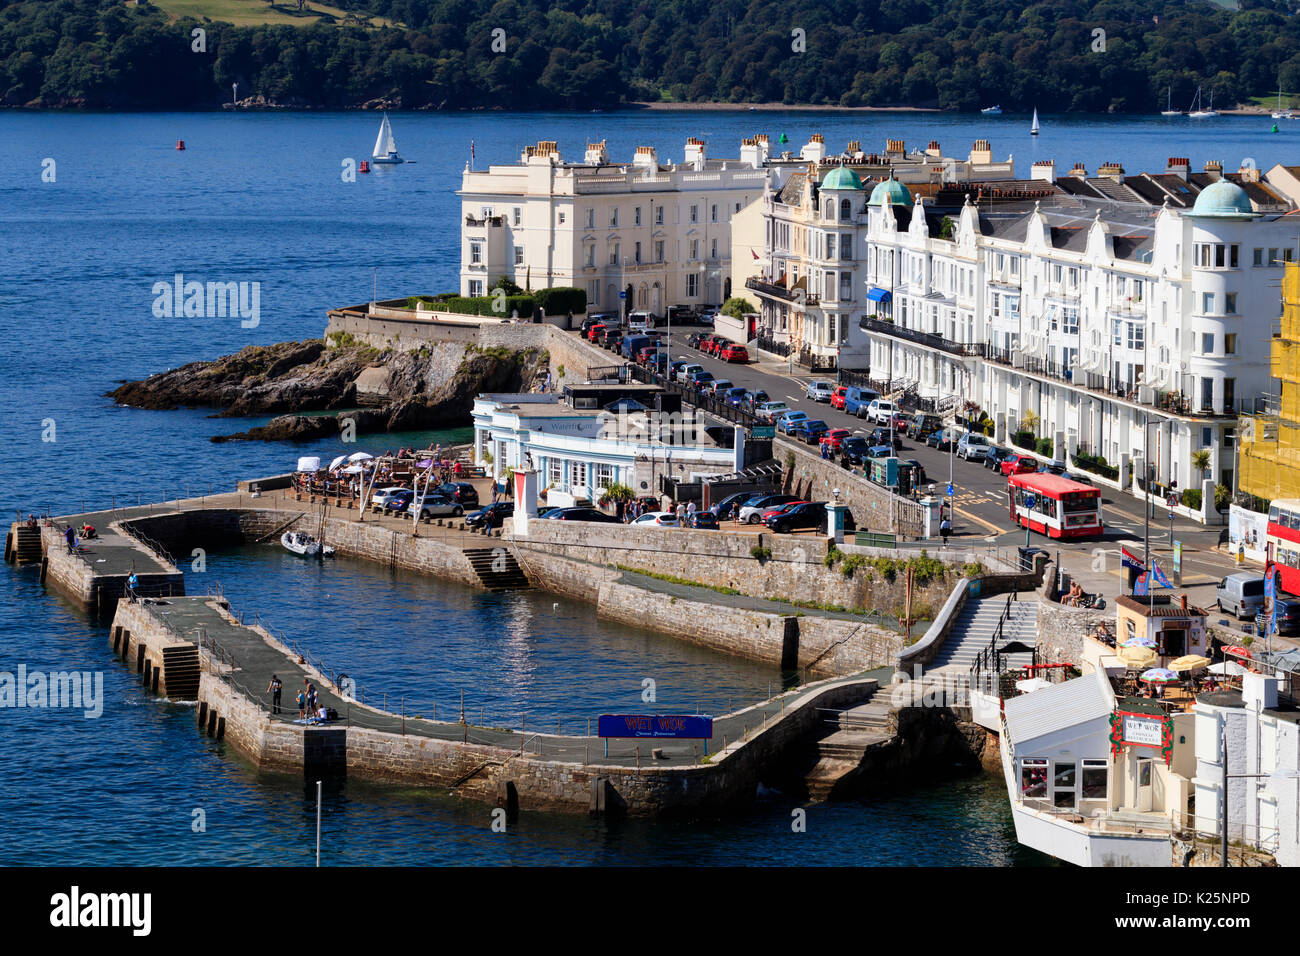 Residential properties, Waterfront Restaurant  and the 1880 harbour on the West Hoe, Plymouth, Devon, UK - Stock Image